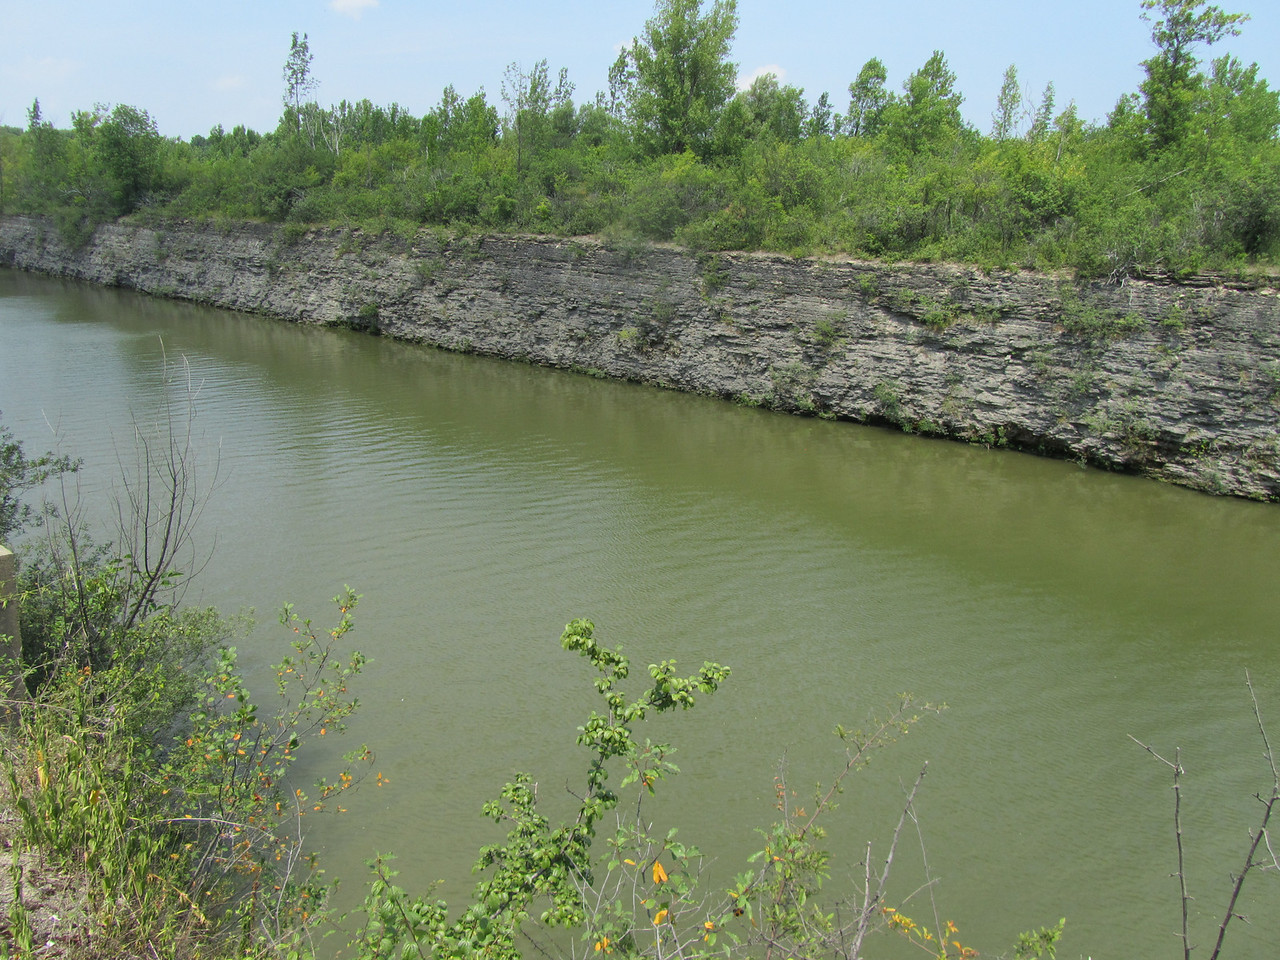 Escarpment along the canal. Too bad so stagnant, looks like a nice place to swim.